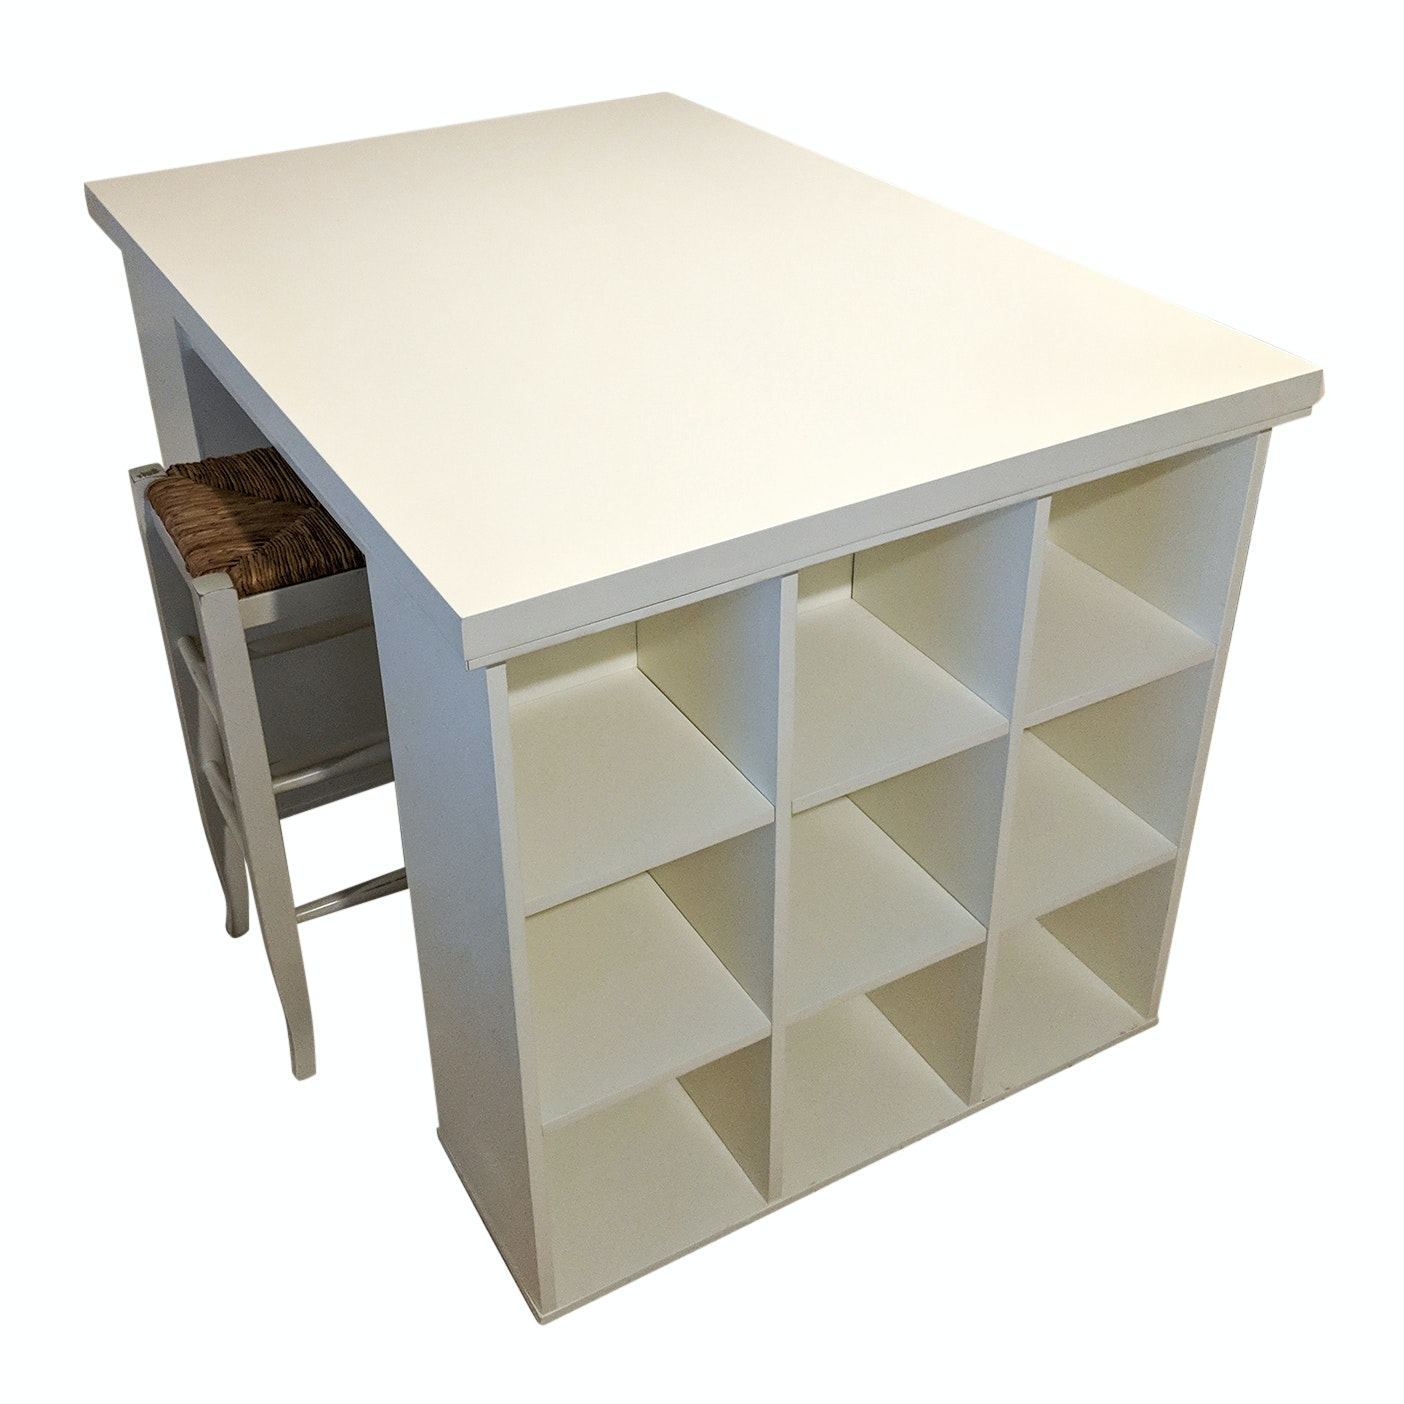 Pottery Barn Storage Utility Desk and Two Wood Stools with Woven Rattan Seats